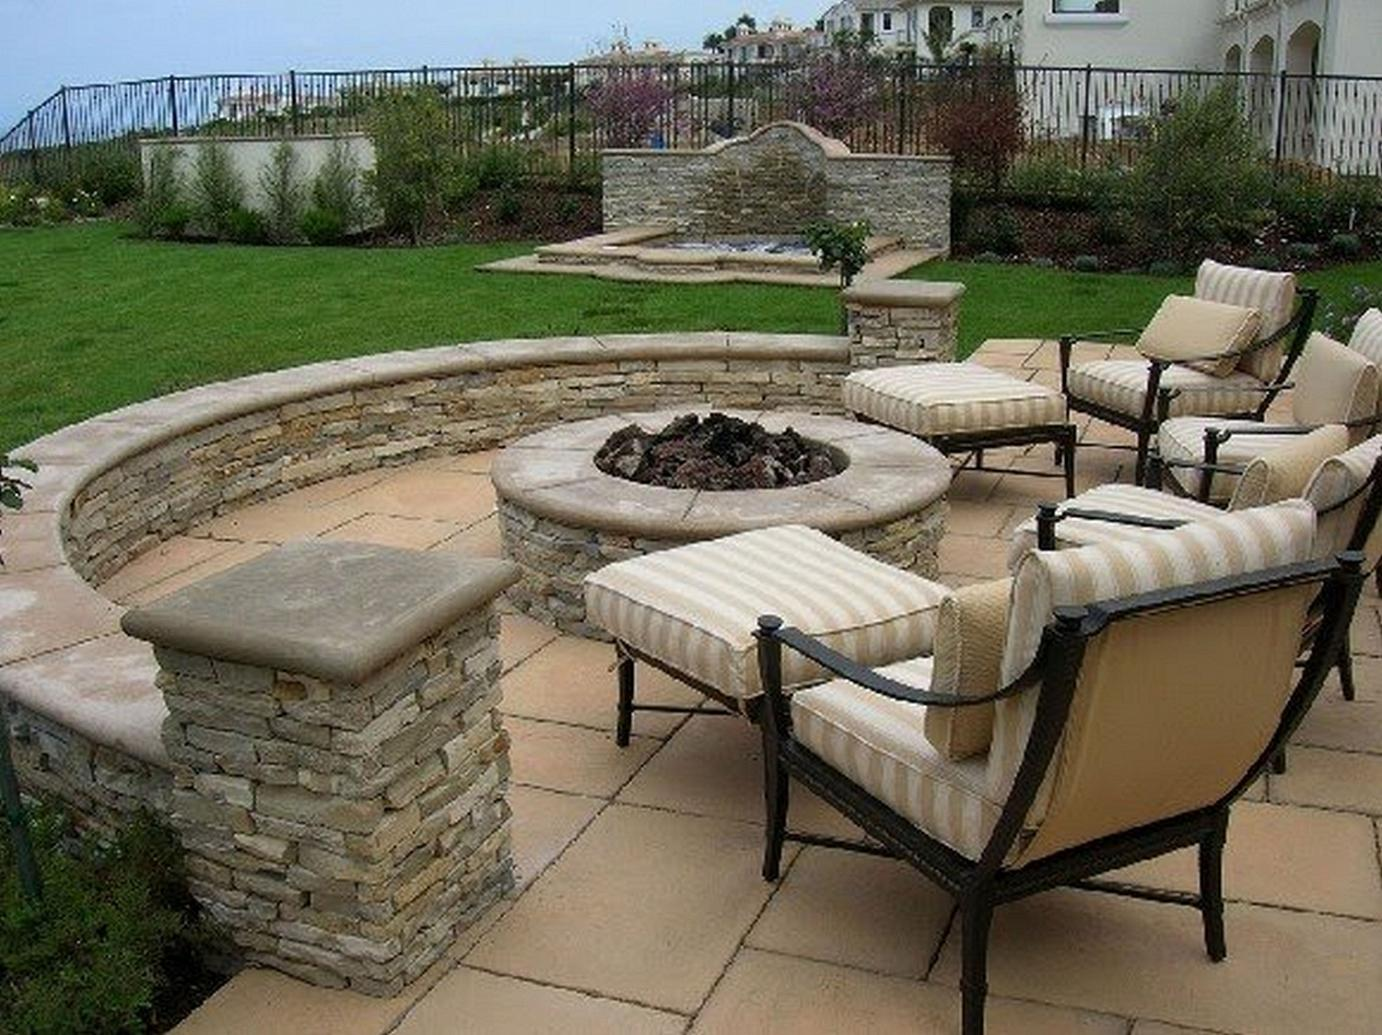 Backyard ideas budget large and beautiful photos photo for Small patio designs on a budget